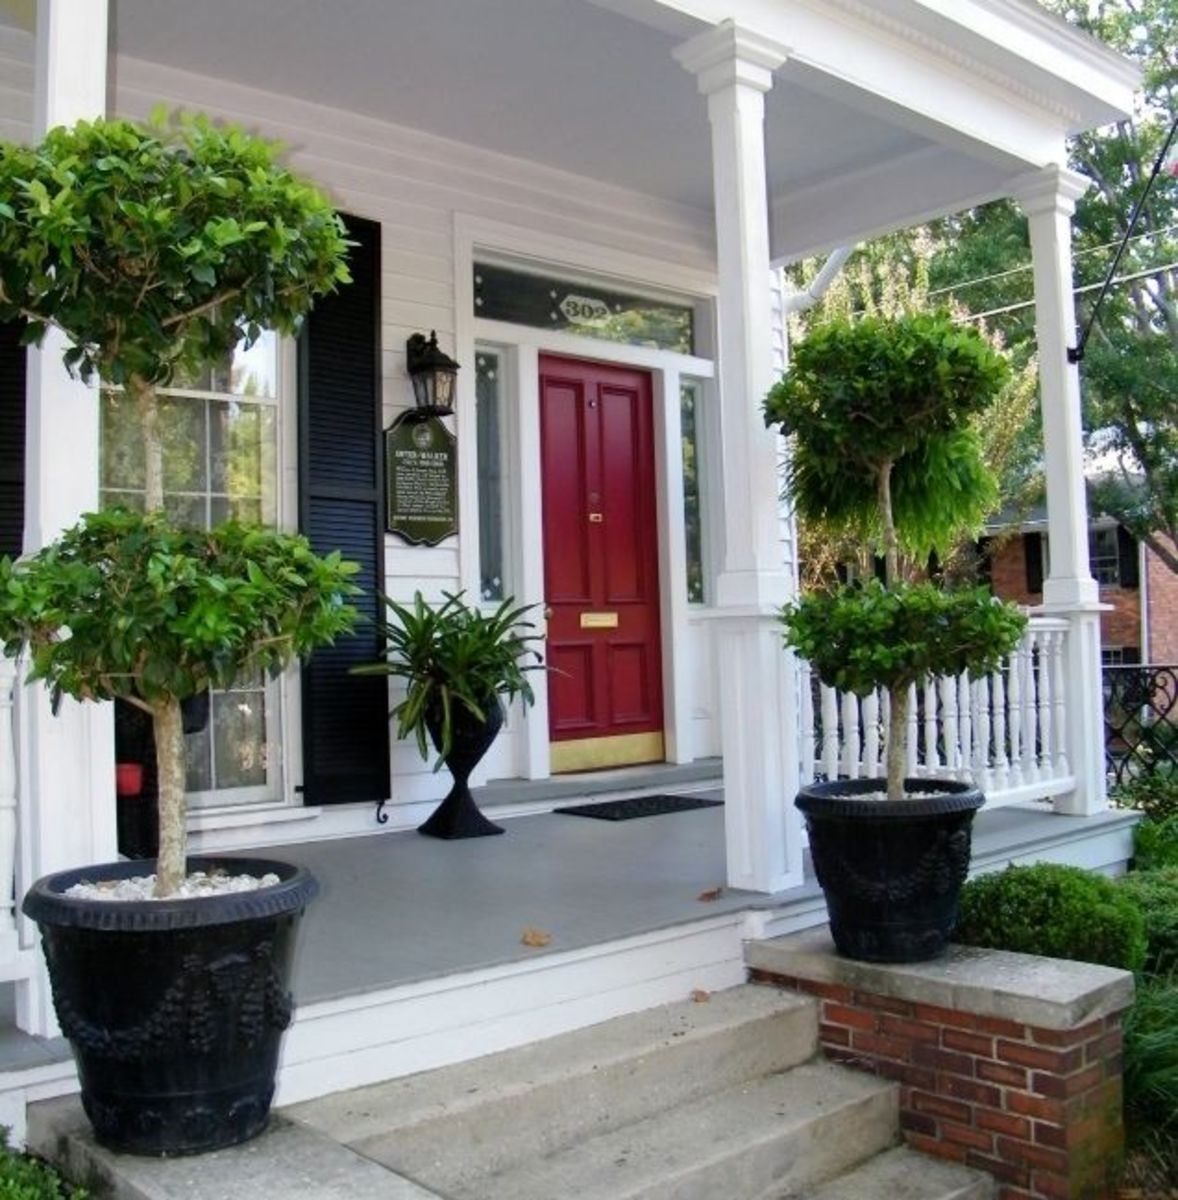 Topiaries flank a bright red door